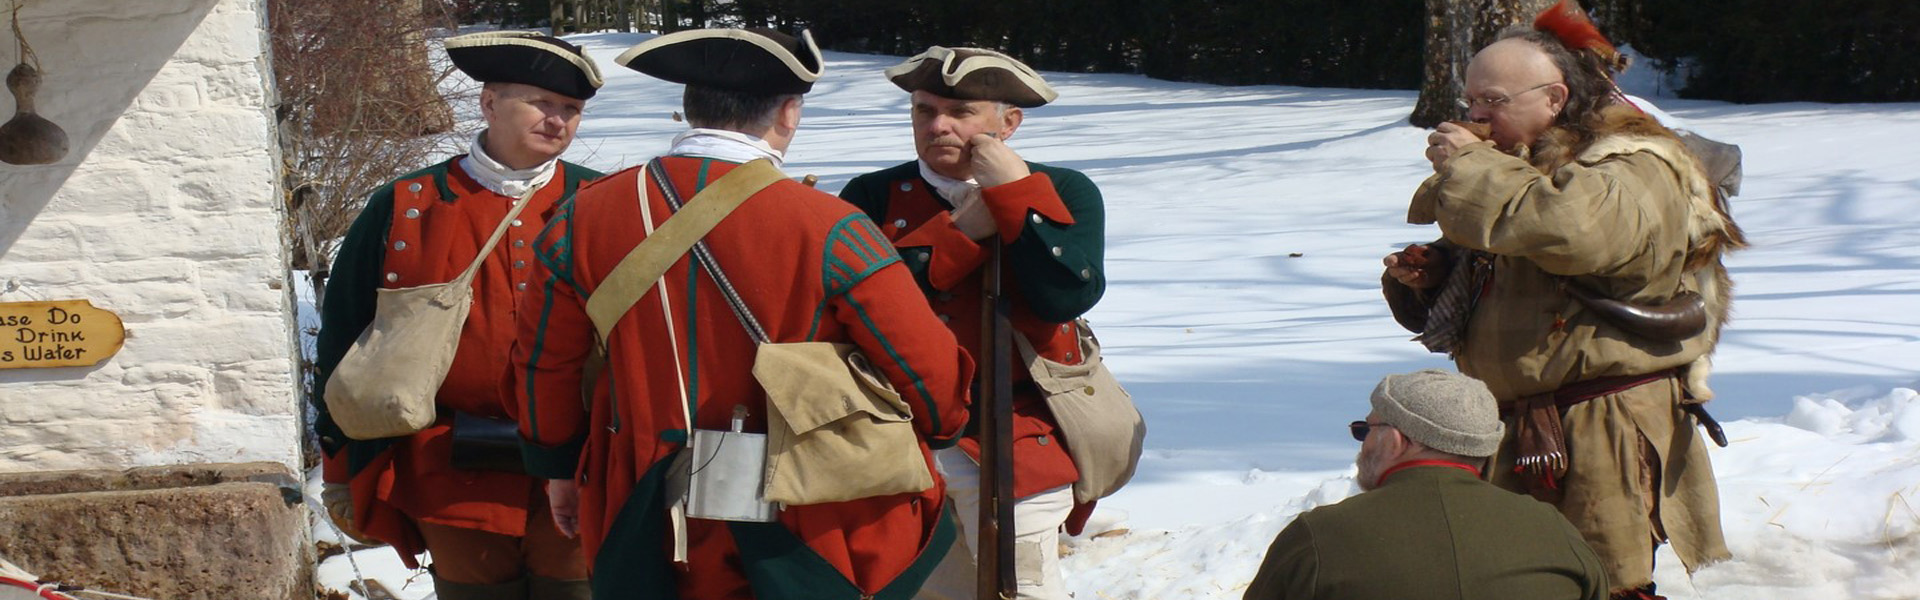 Reenactors dressed in red uniforms at the Conrad Weiser Homestead in Berks County stop to talk